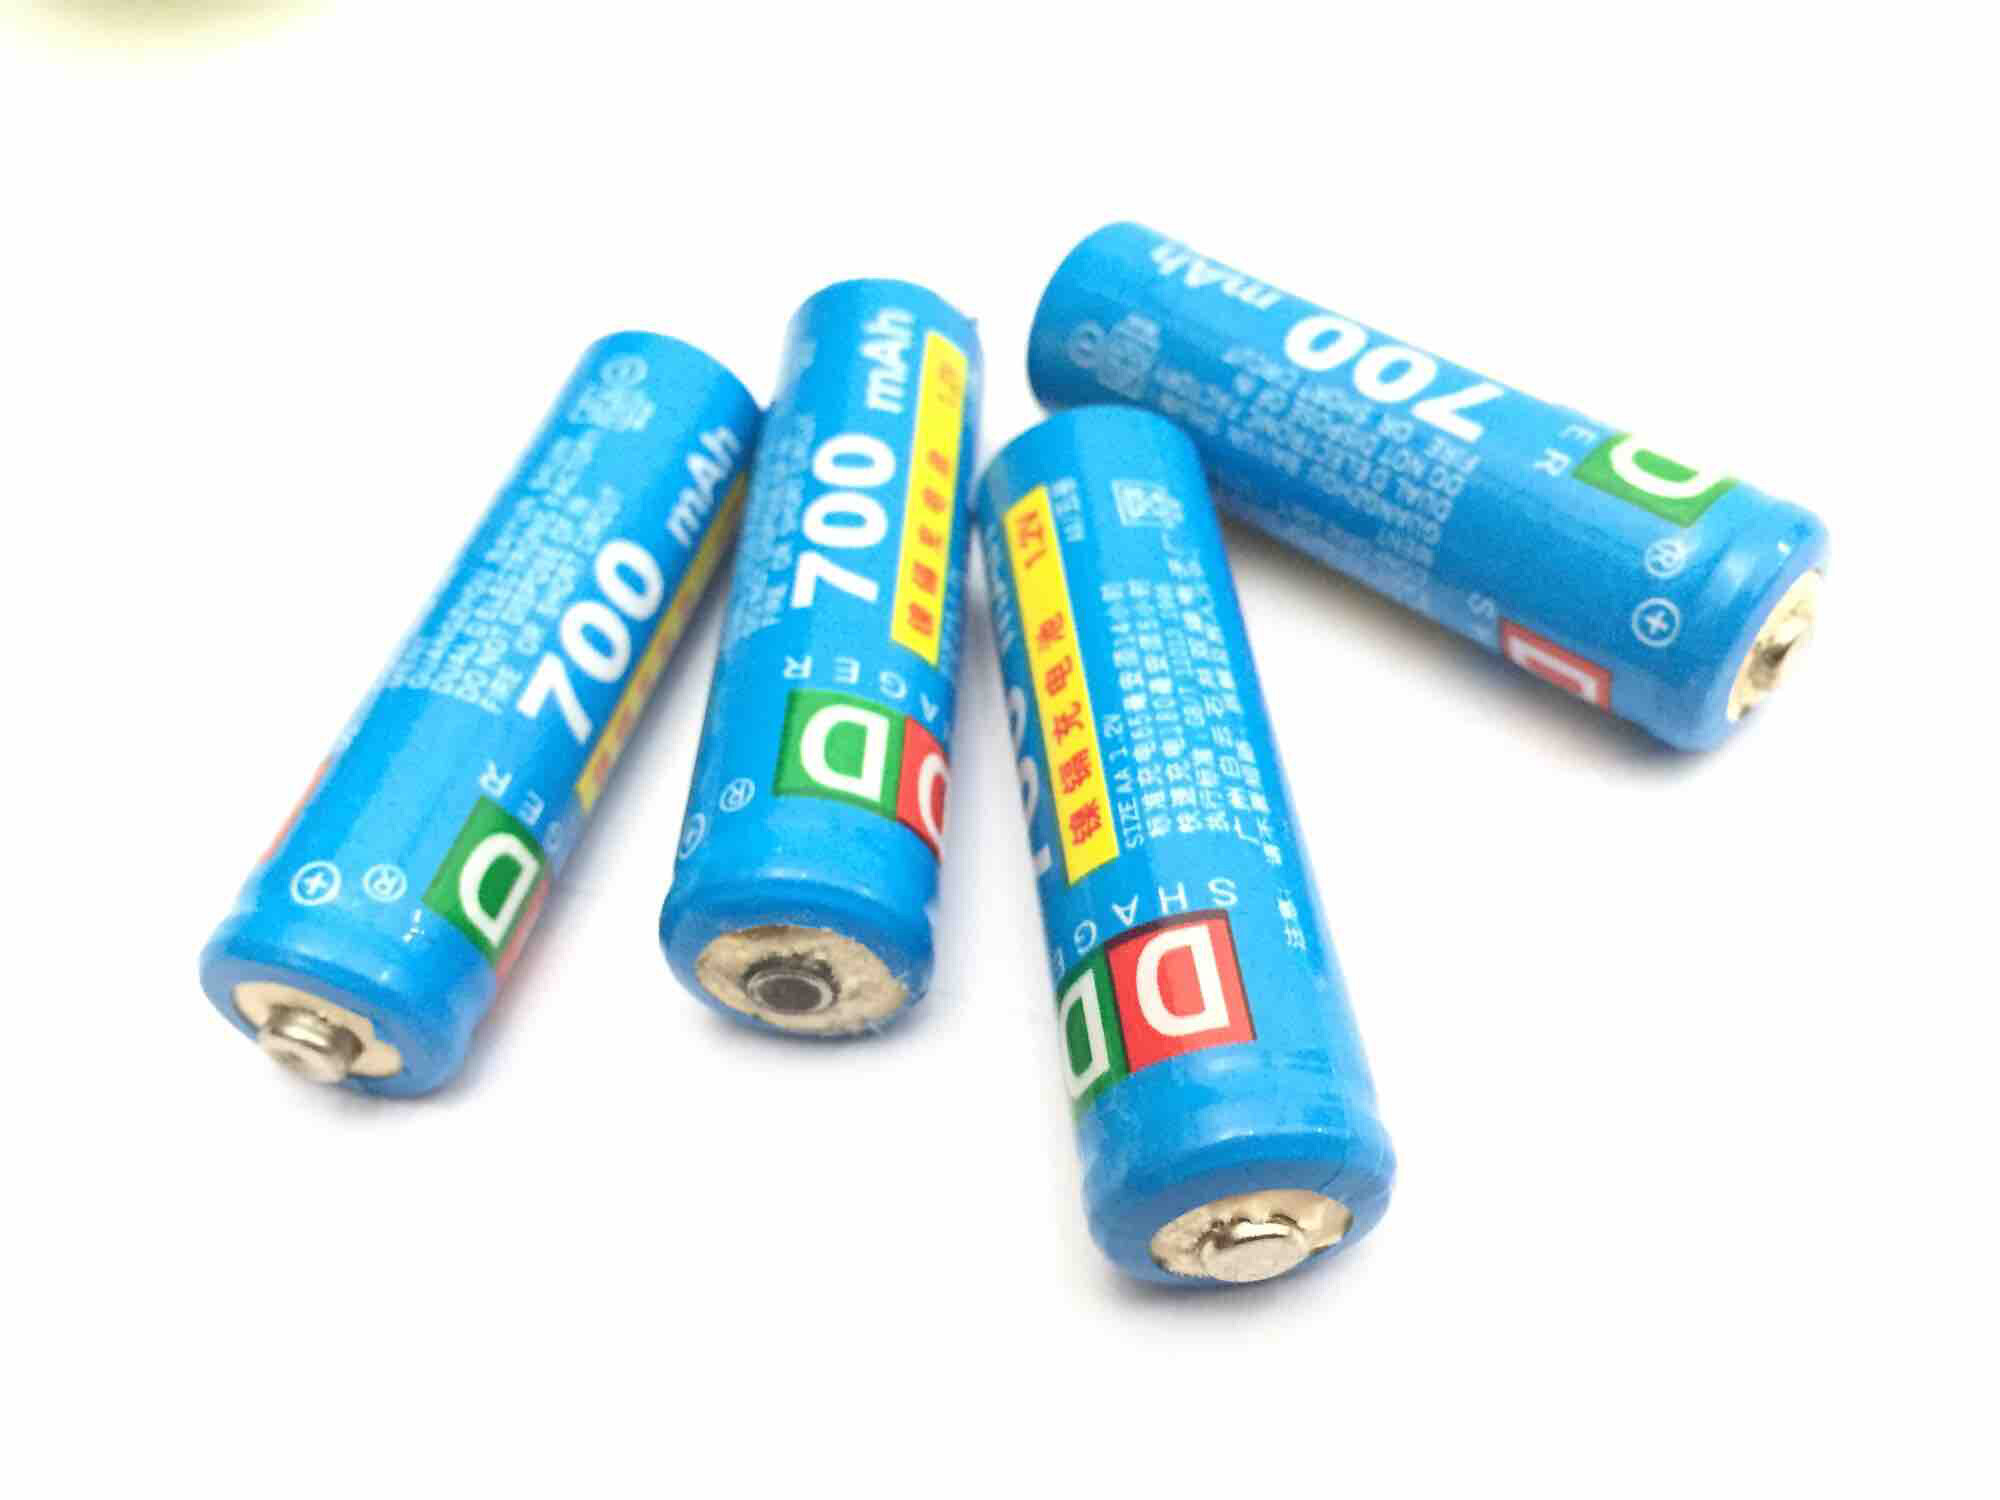 Batteries Rechargeable DD  Lii-32A 3.7V 700mAh Li-ion Battery